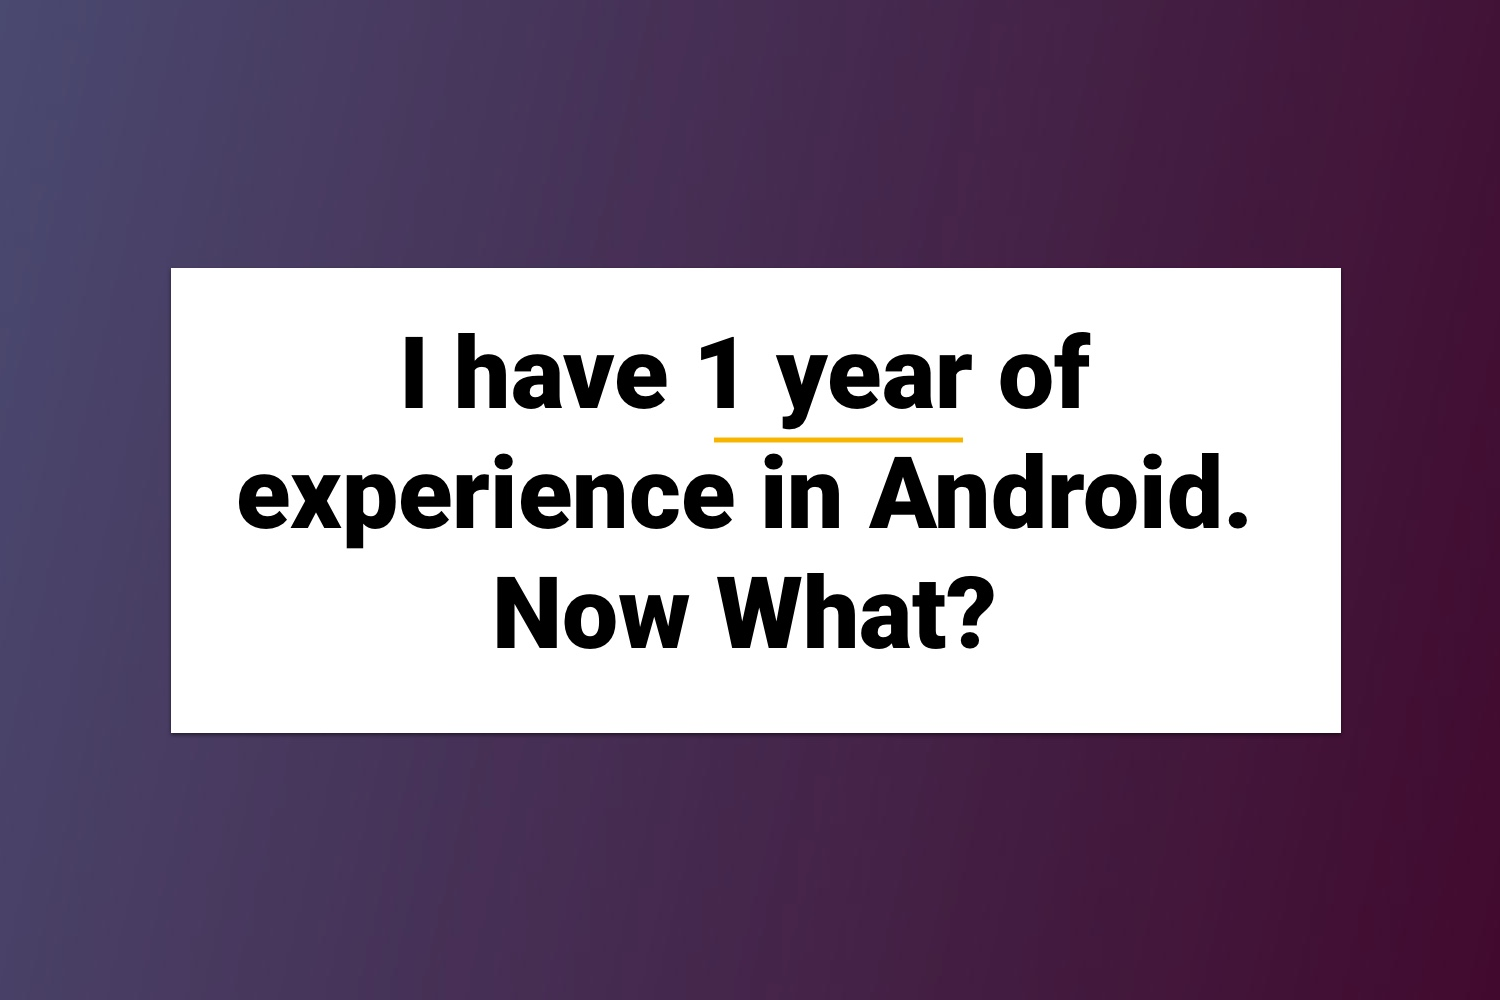 I have 1 year of experience in Android. Now What?